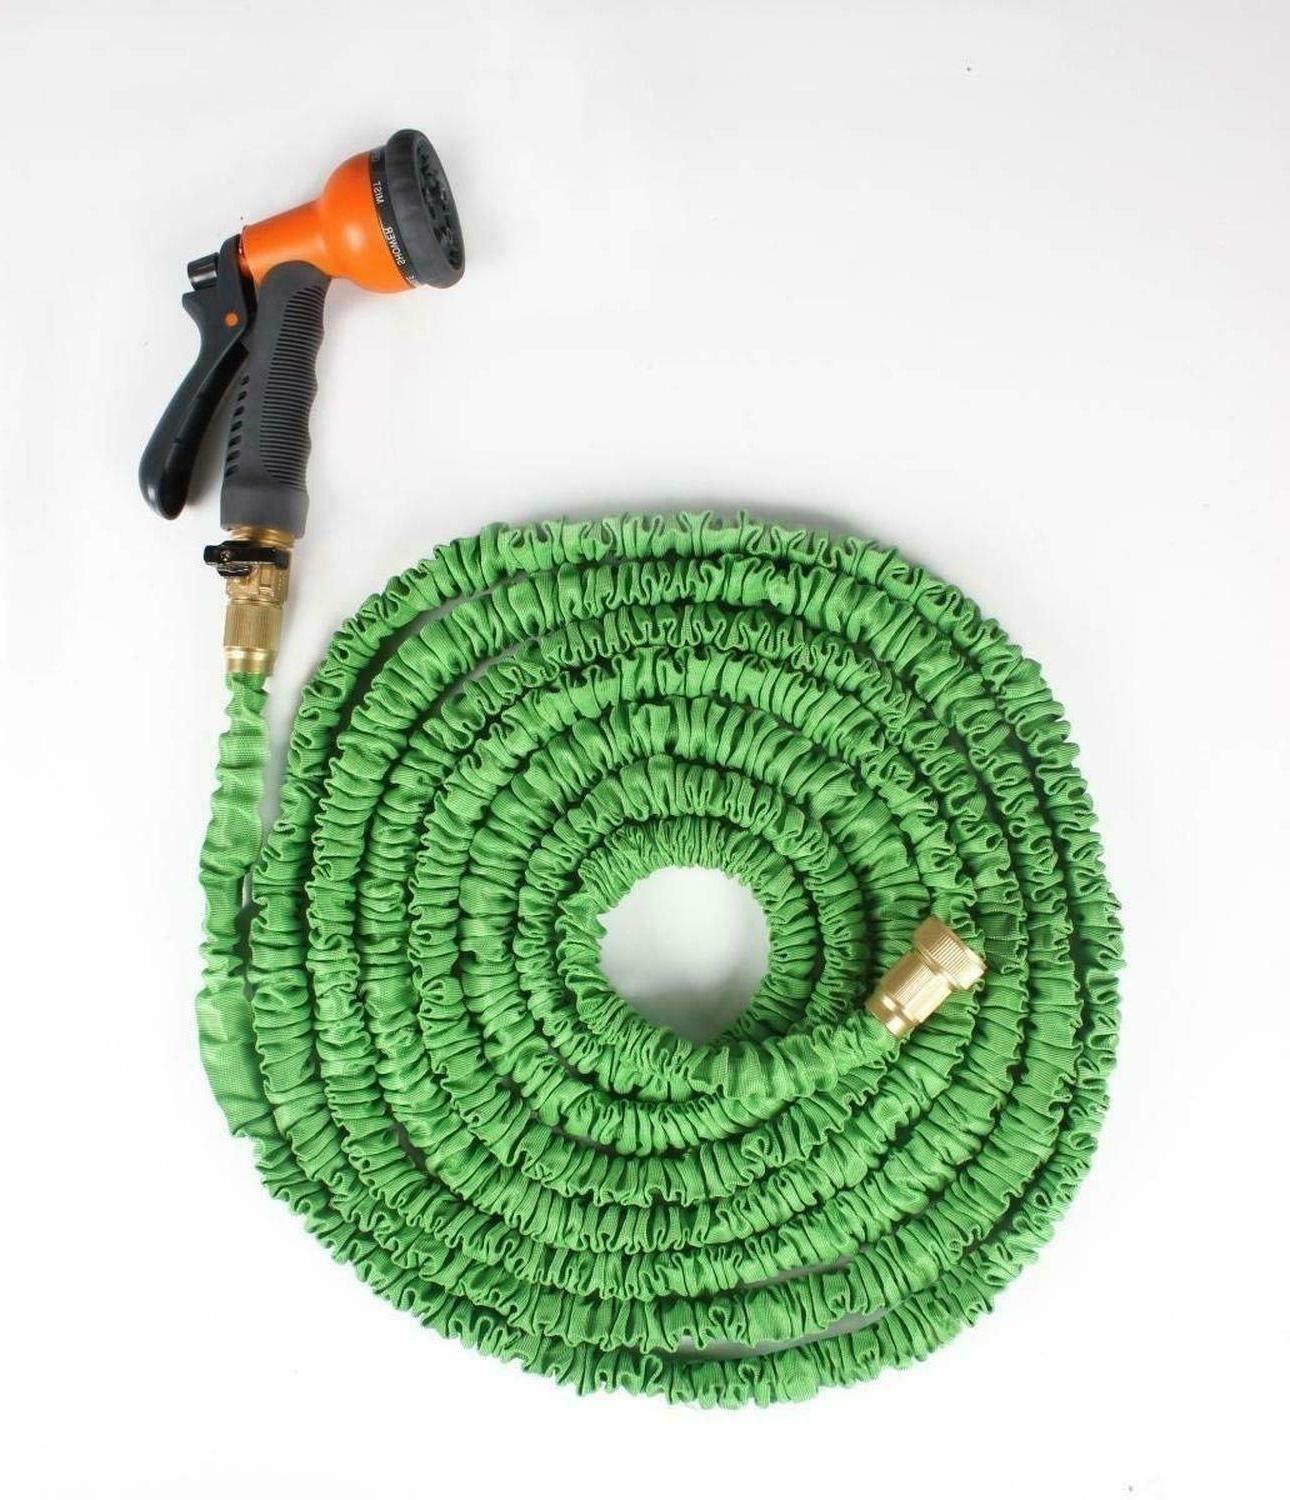 Ohuhu Feet Expandable Garden Hose Connector and